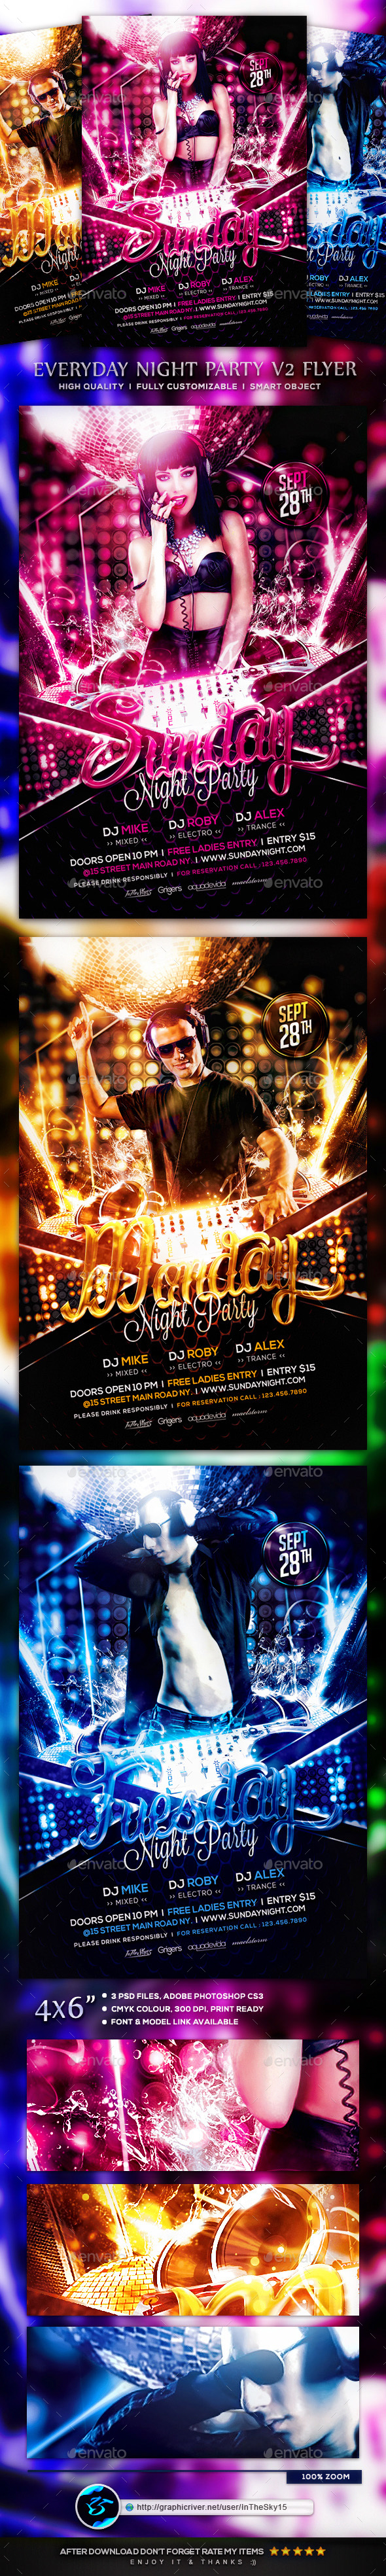 Everyday Night Party V2 Flyer Template - Clubs & Parties Events